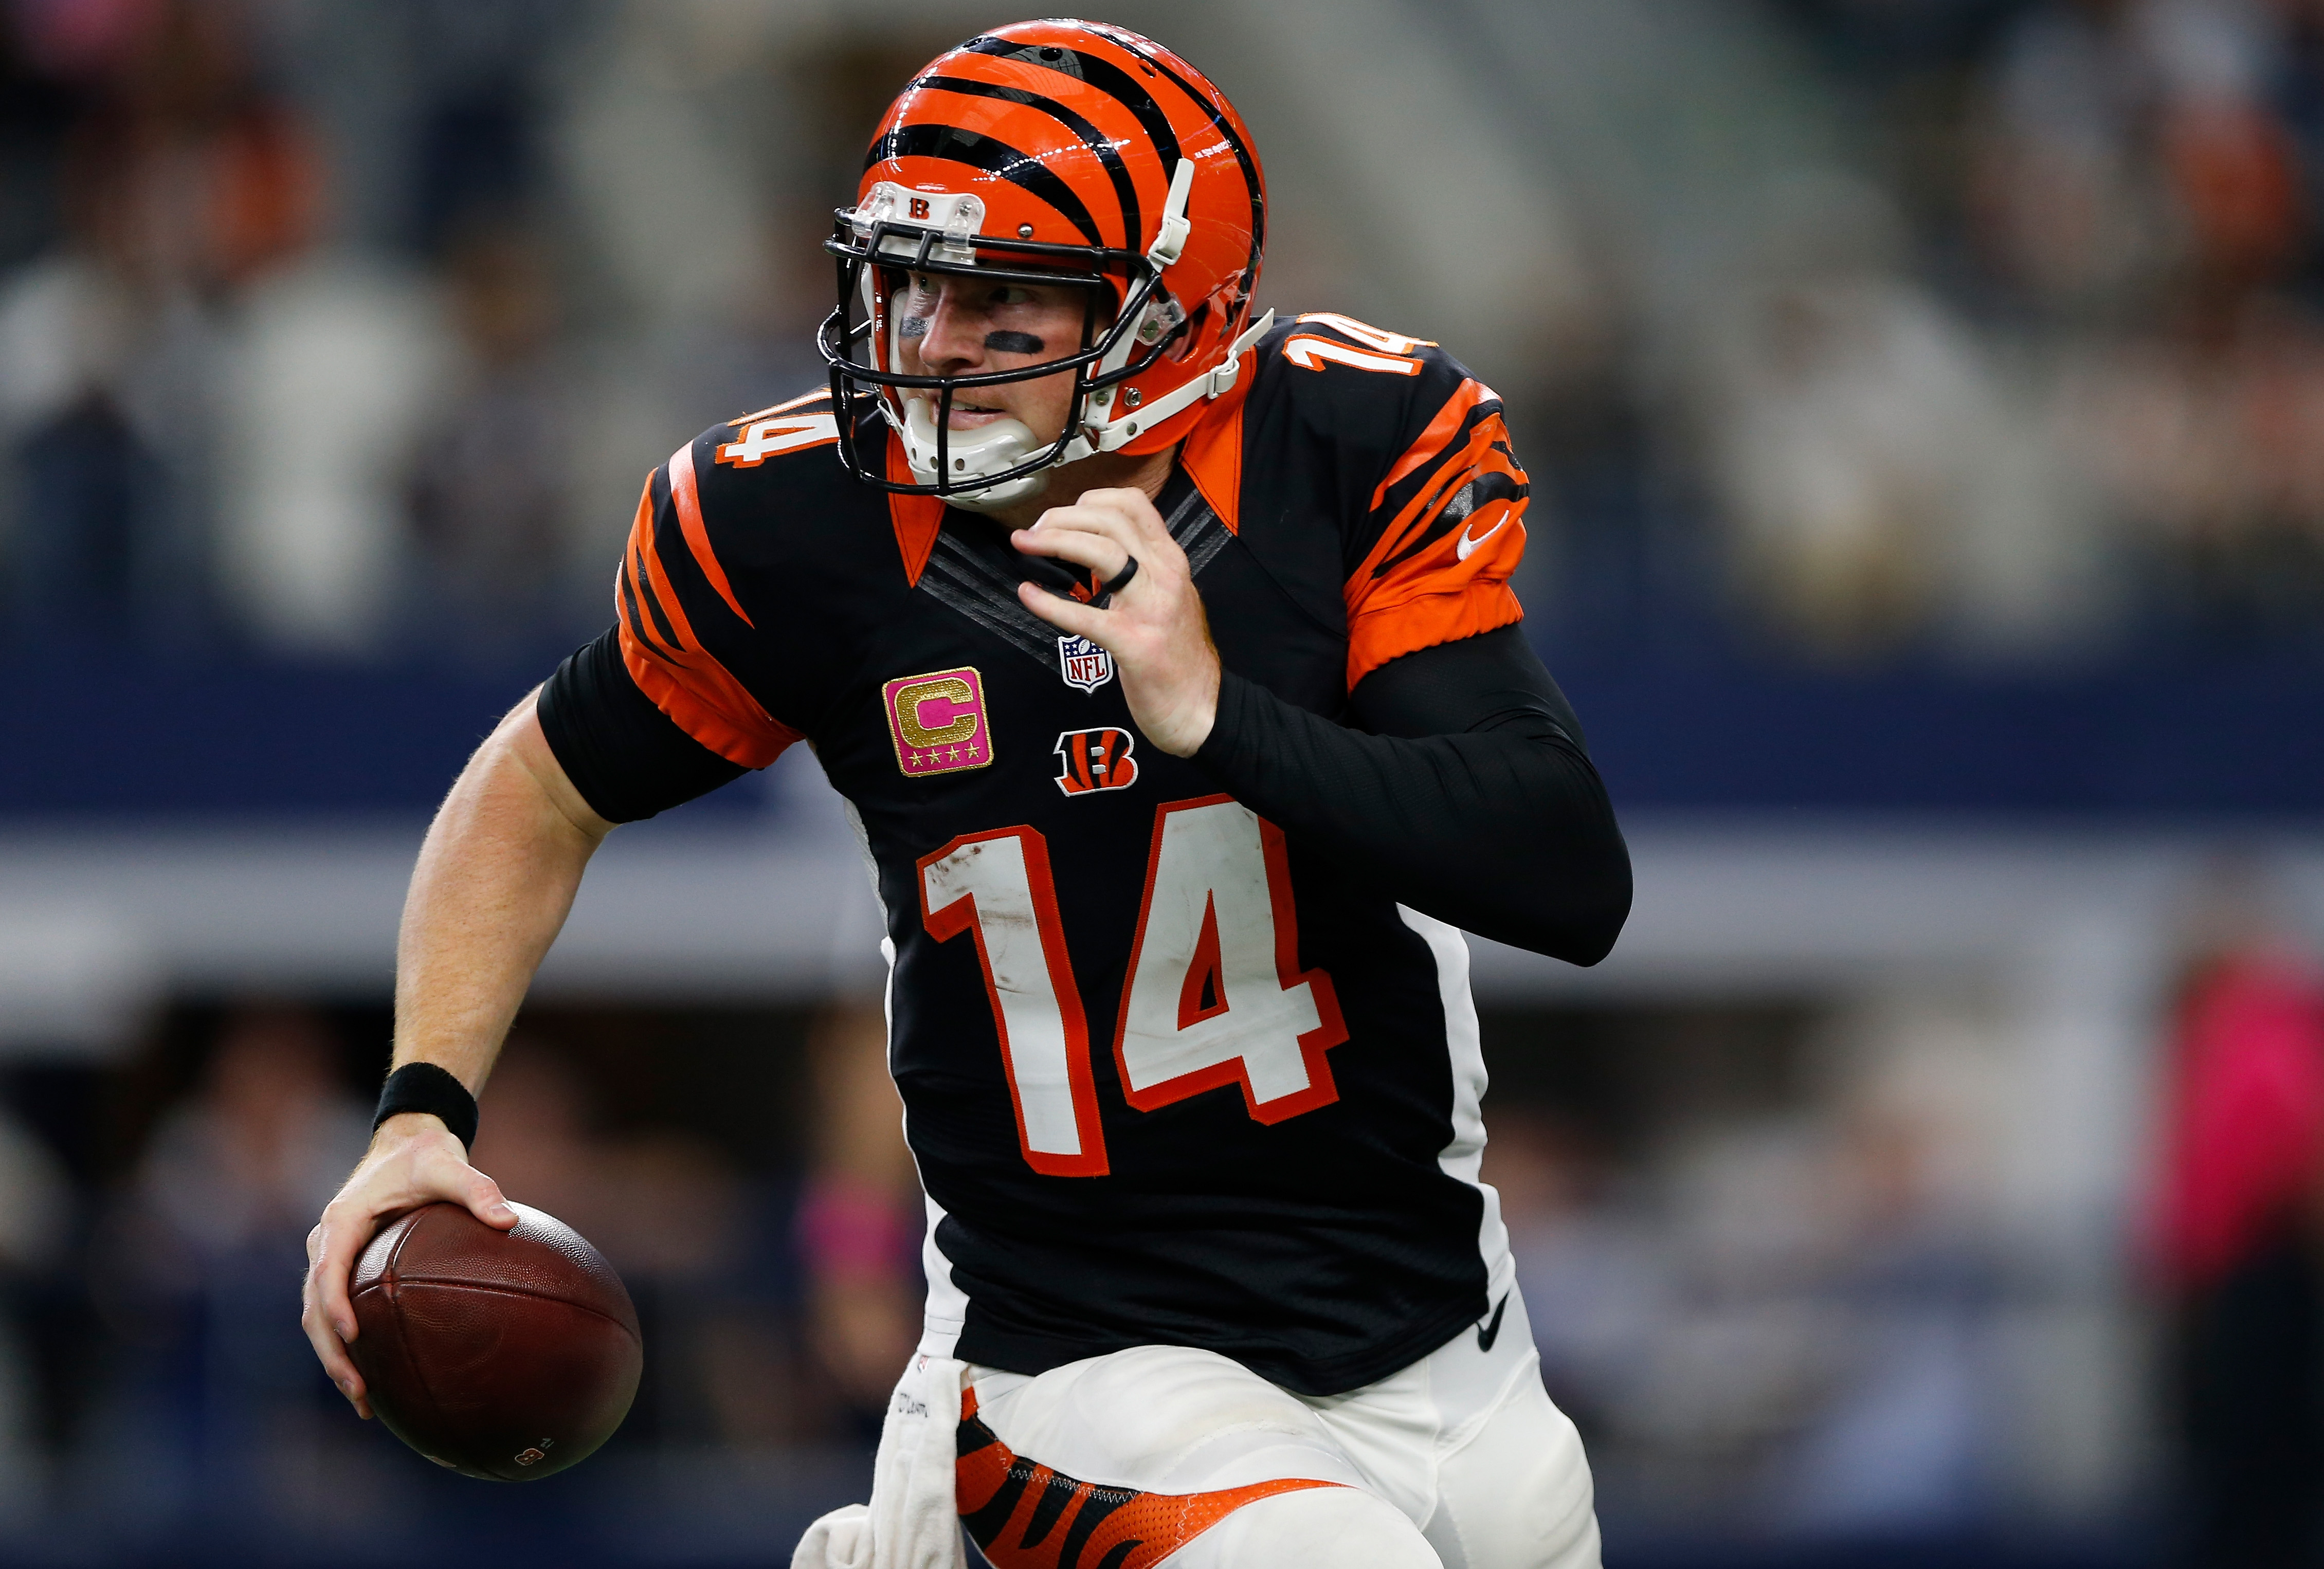 bengals browns live stream, bengals browns game live stream, browns game live stream, nfl cbs live stream, watch bengals browns online, bengals browns xbox one, bengals browns vivo